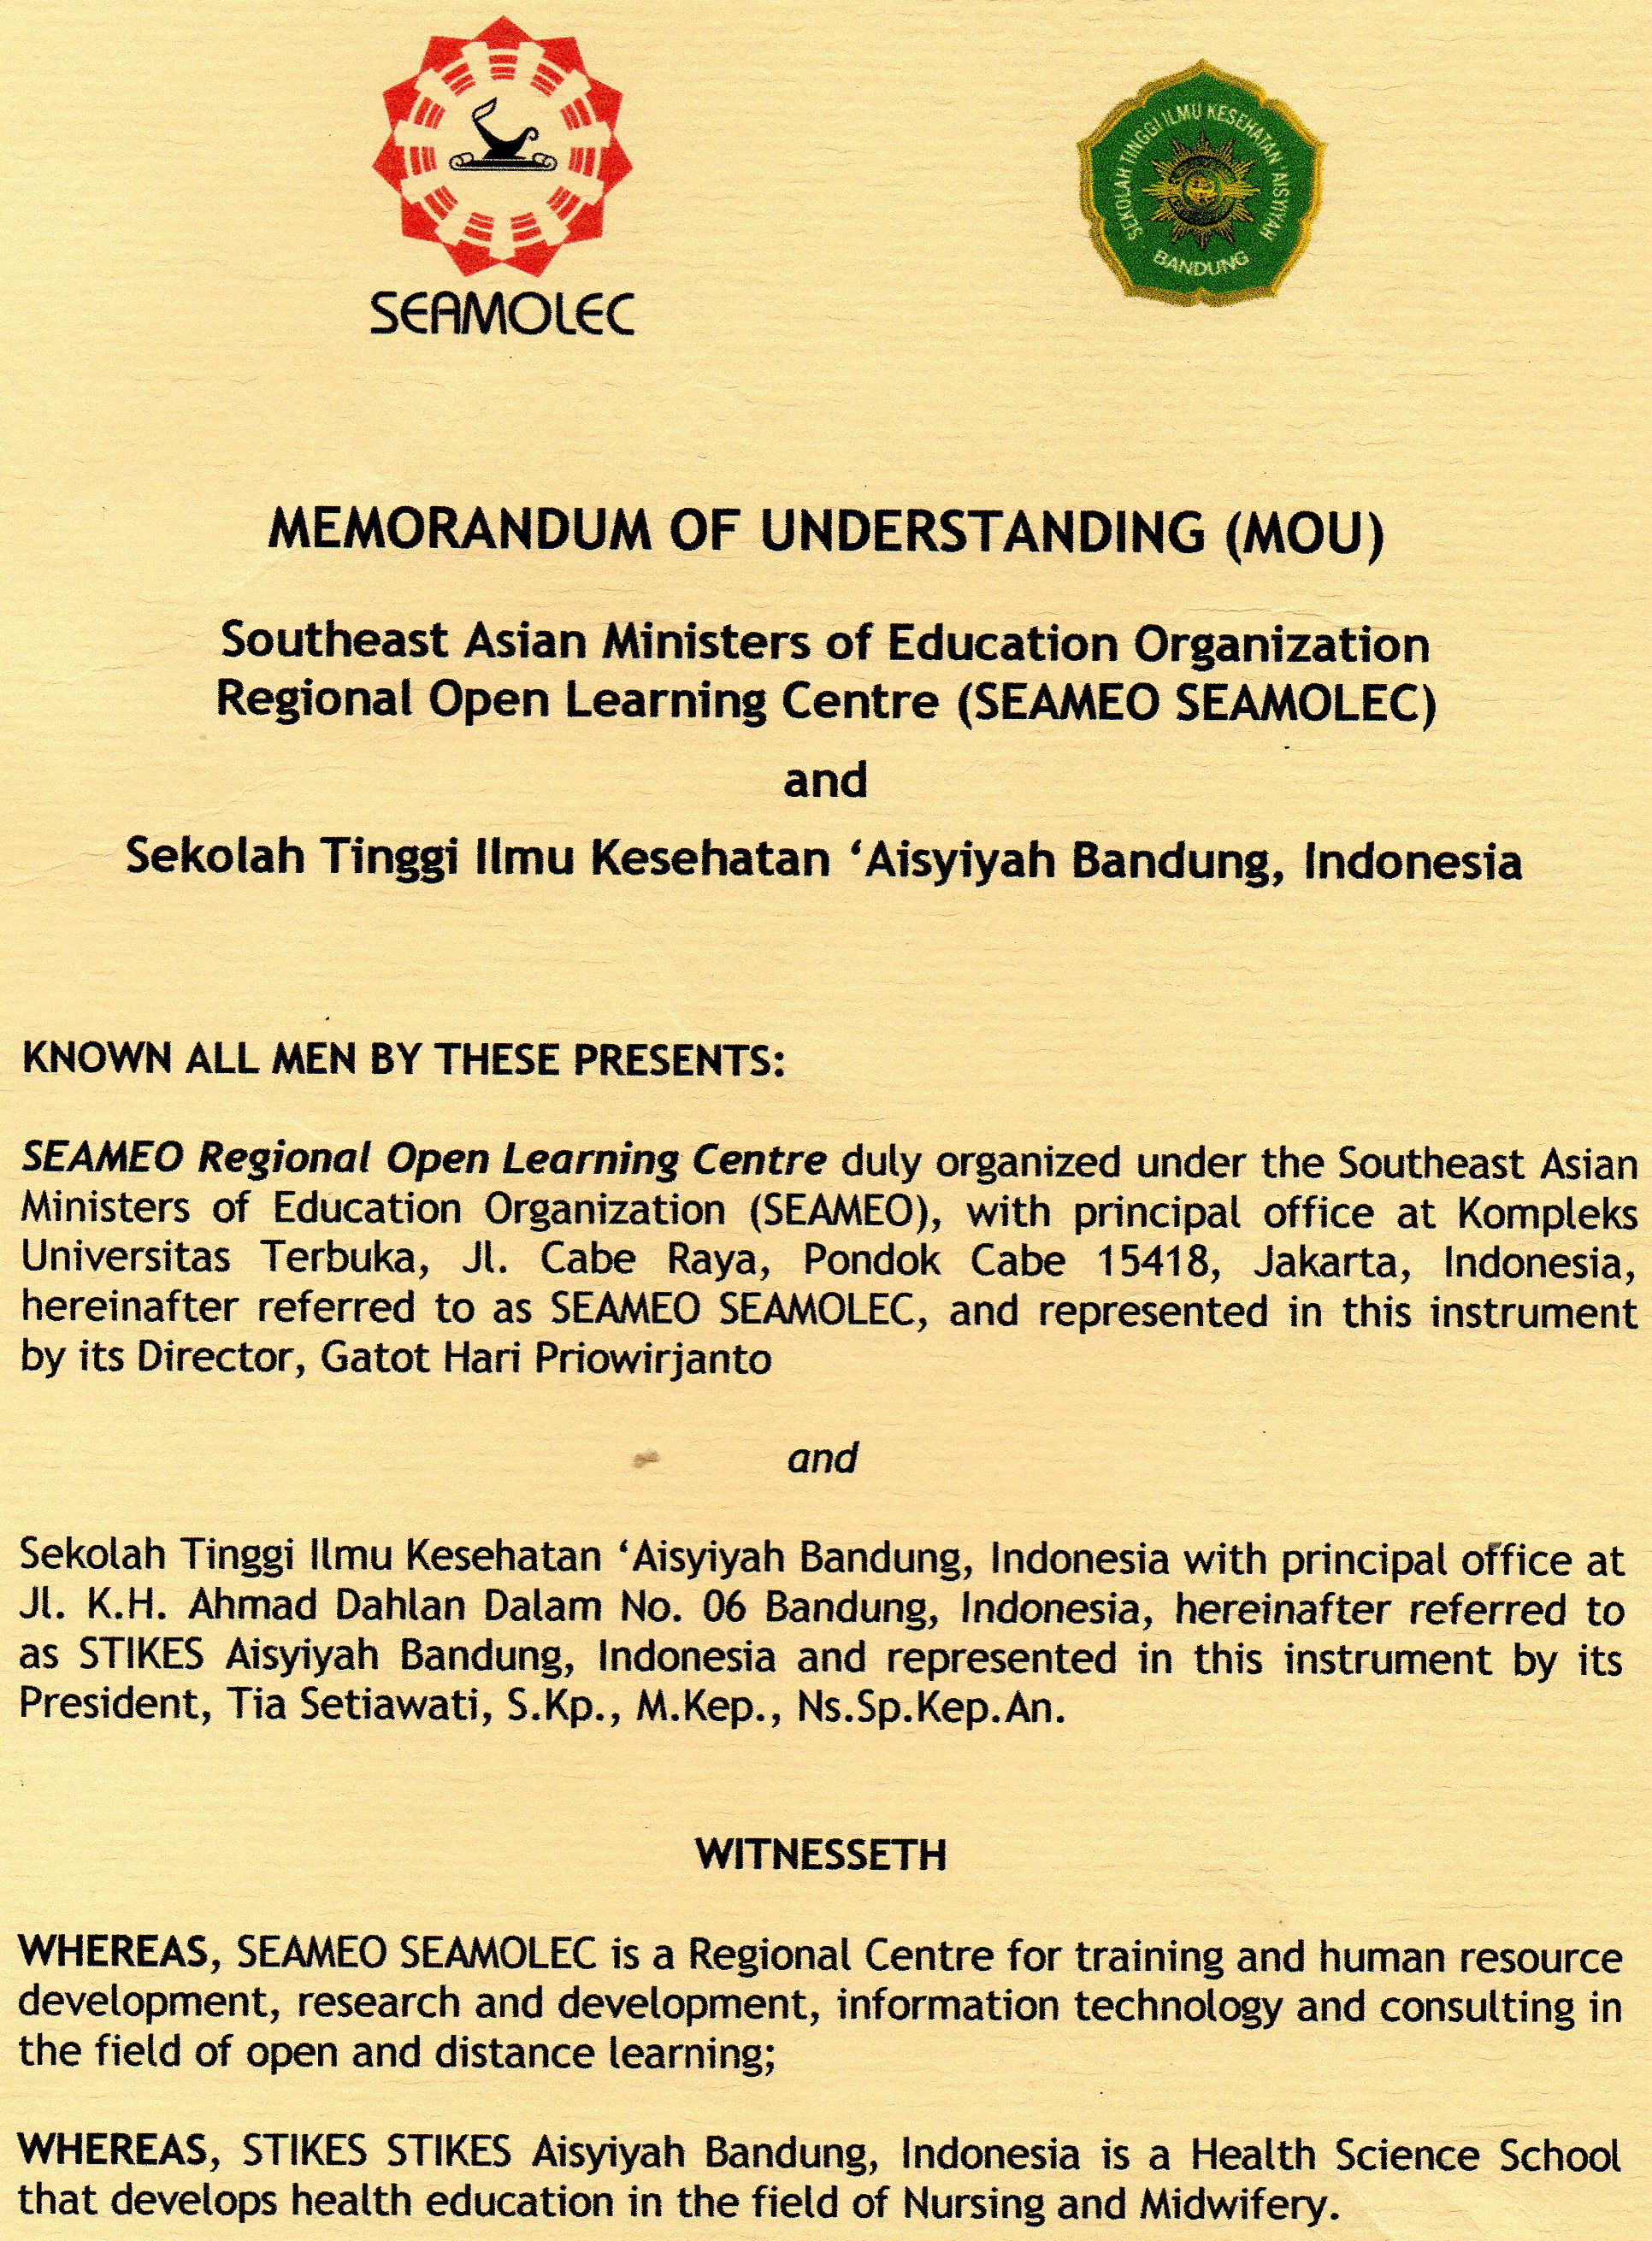 MOU dengan Southeast Asian Ministers of Education Organization Regional Open Learning Center (SEAMEO SEAMOLEC)